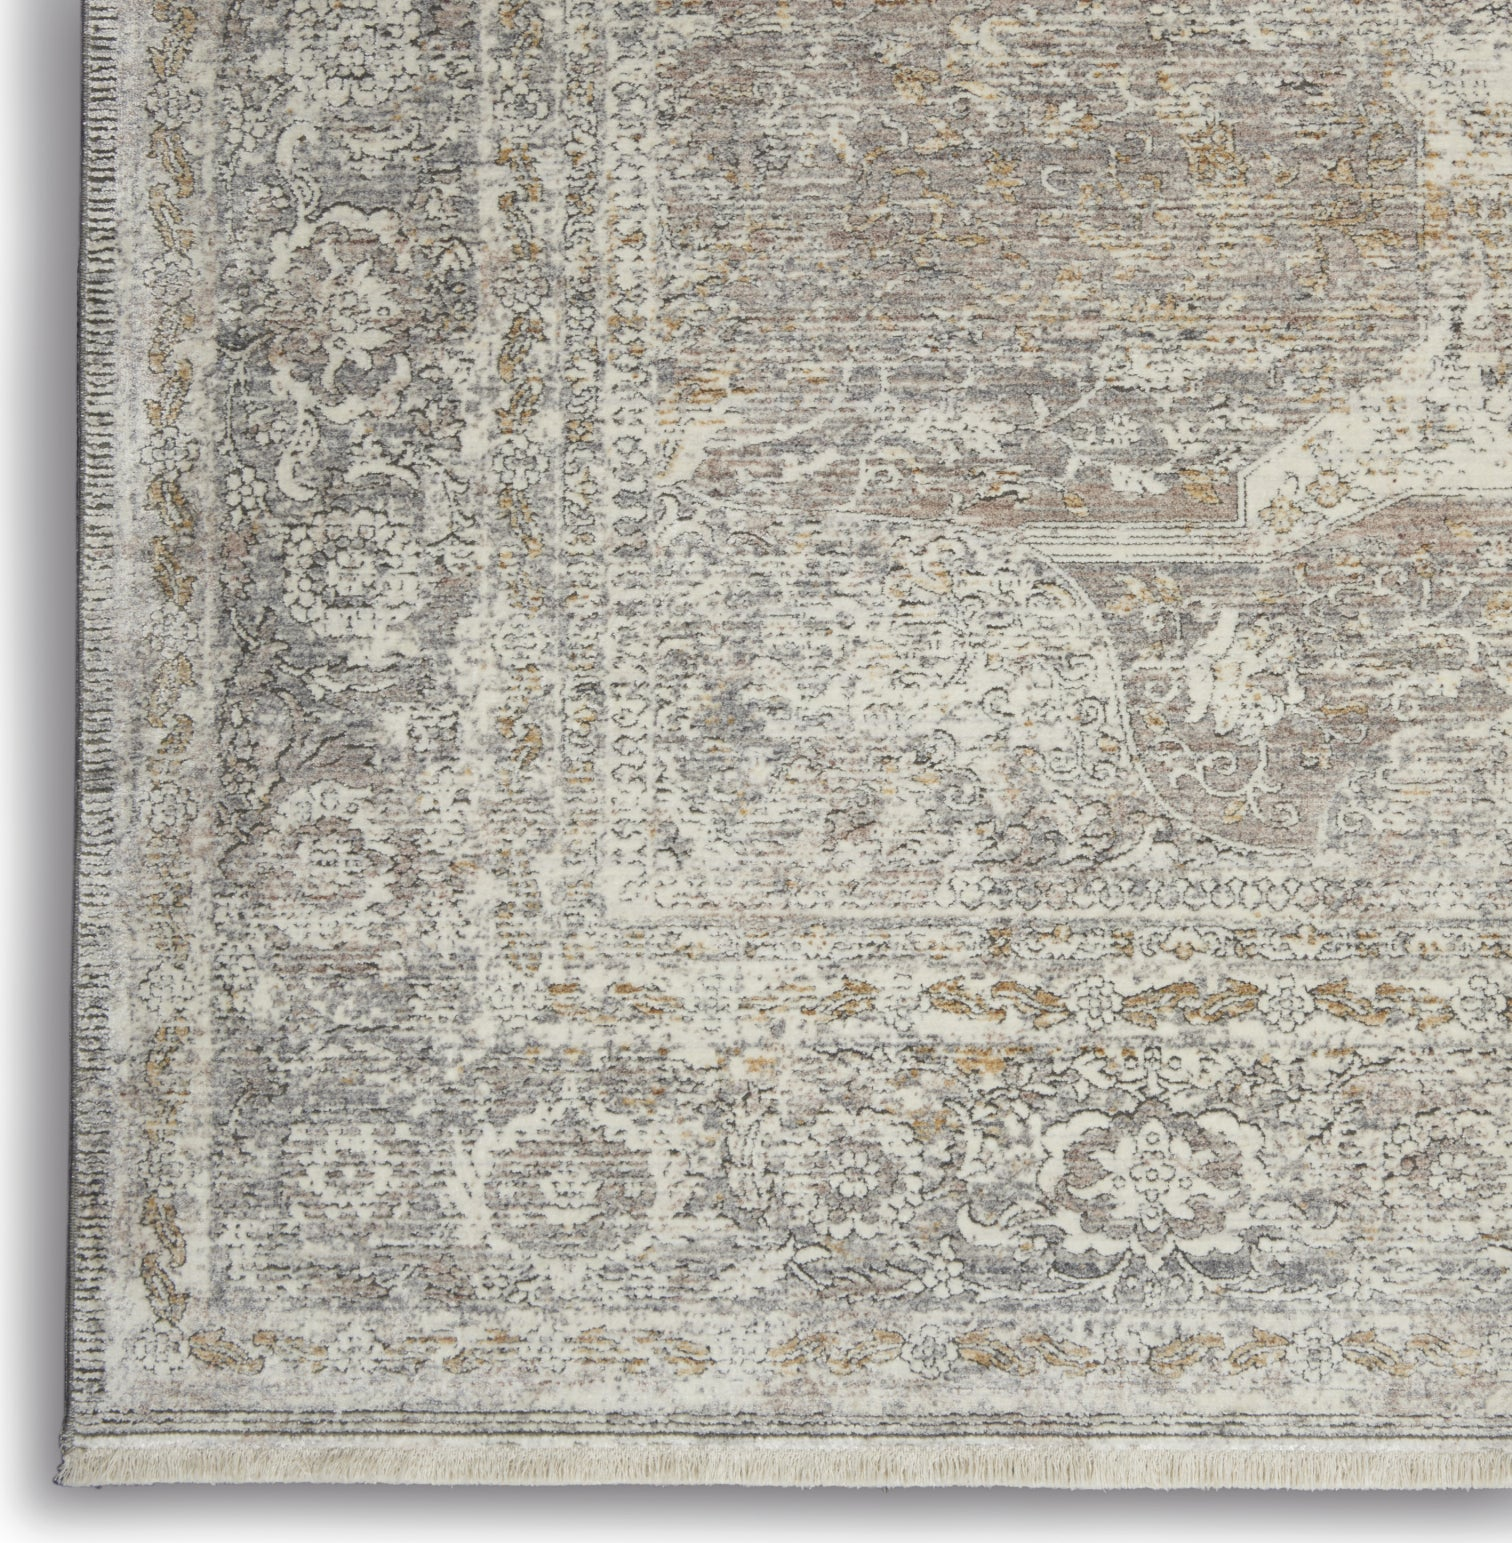 Starry Nights STN03 Silver/Cream Area Rug by Nourison Room Image